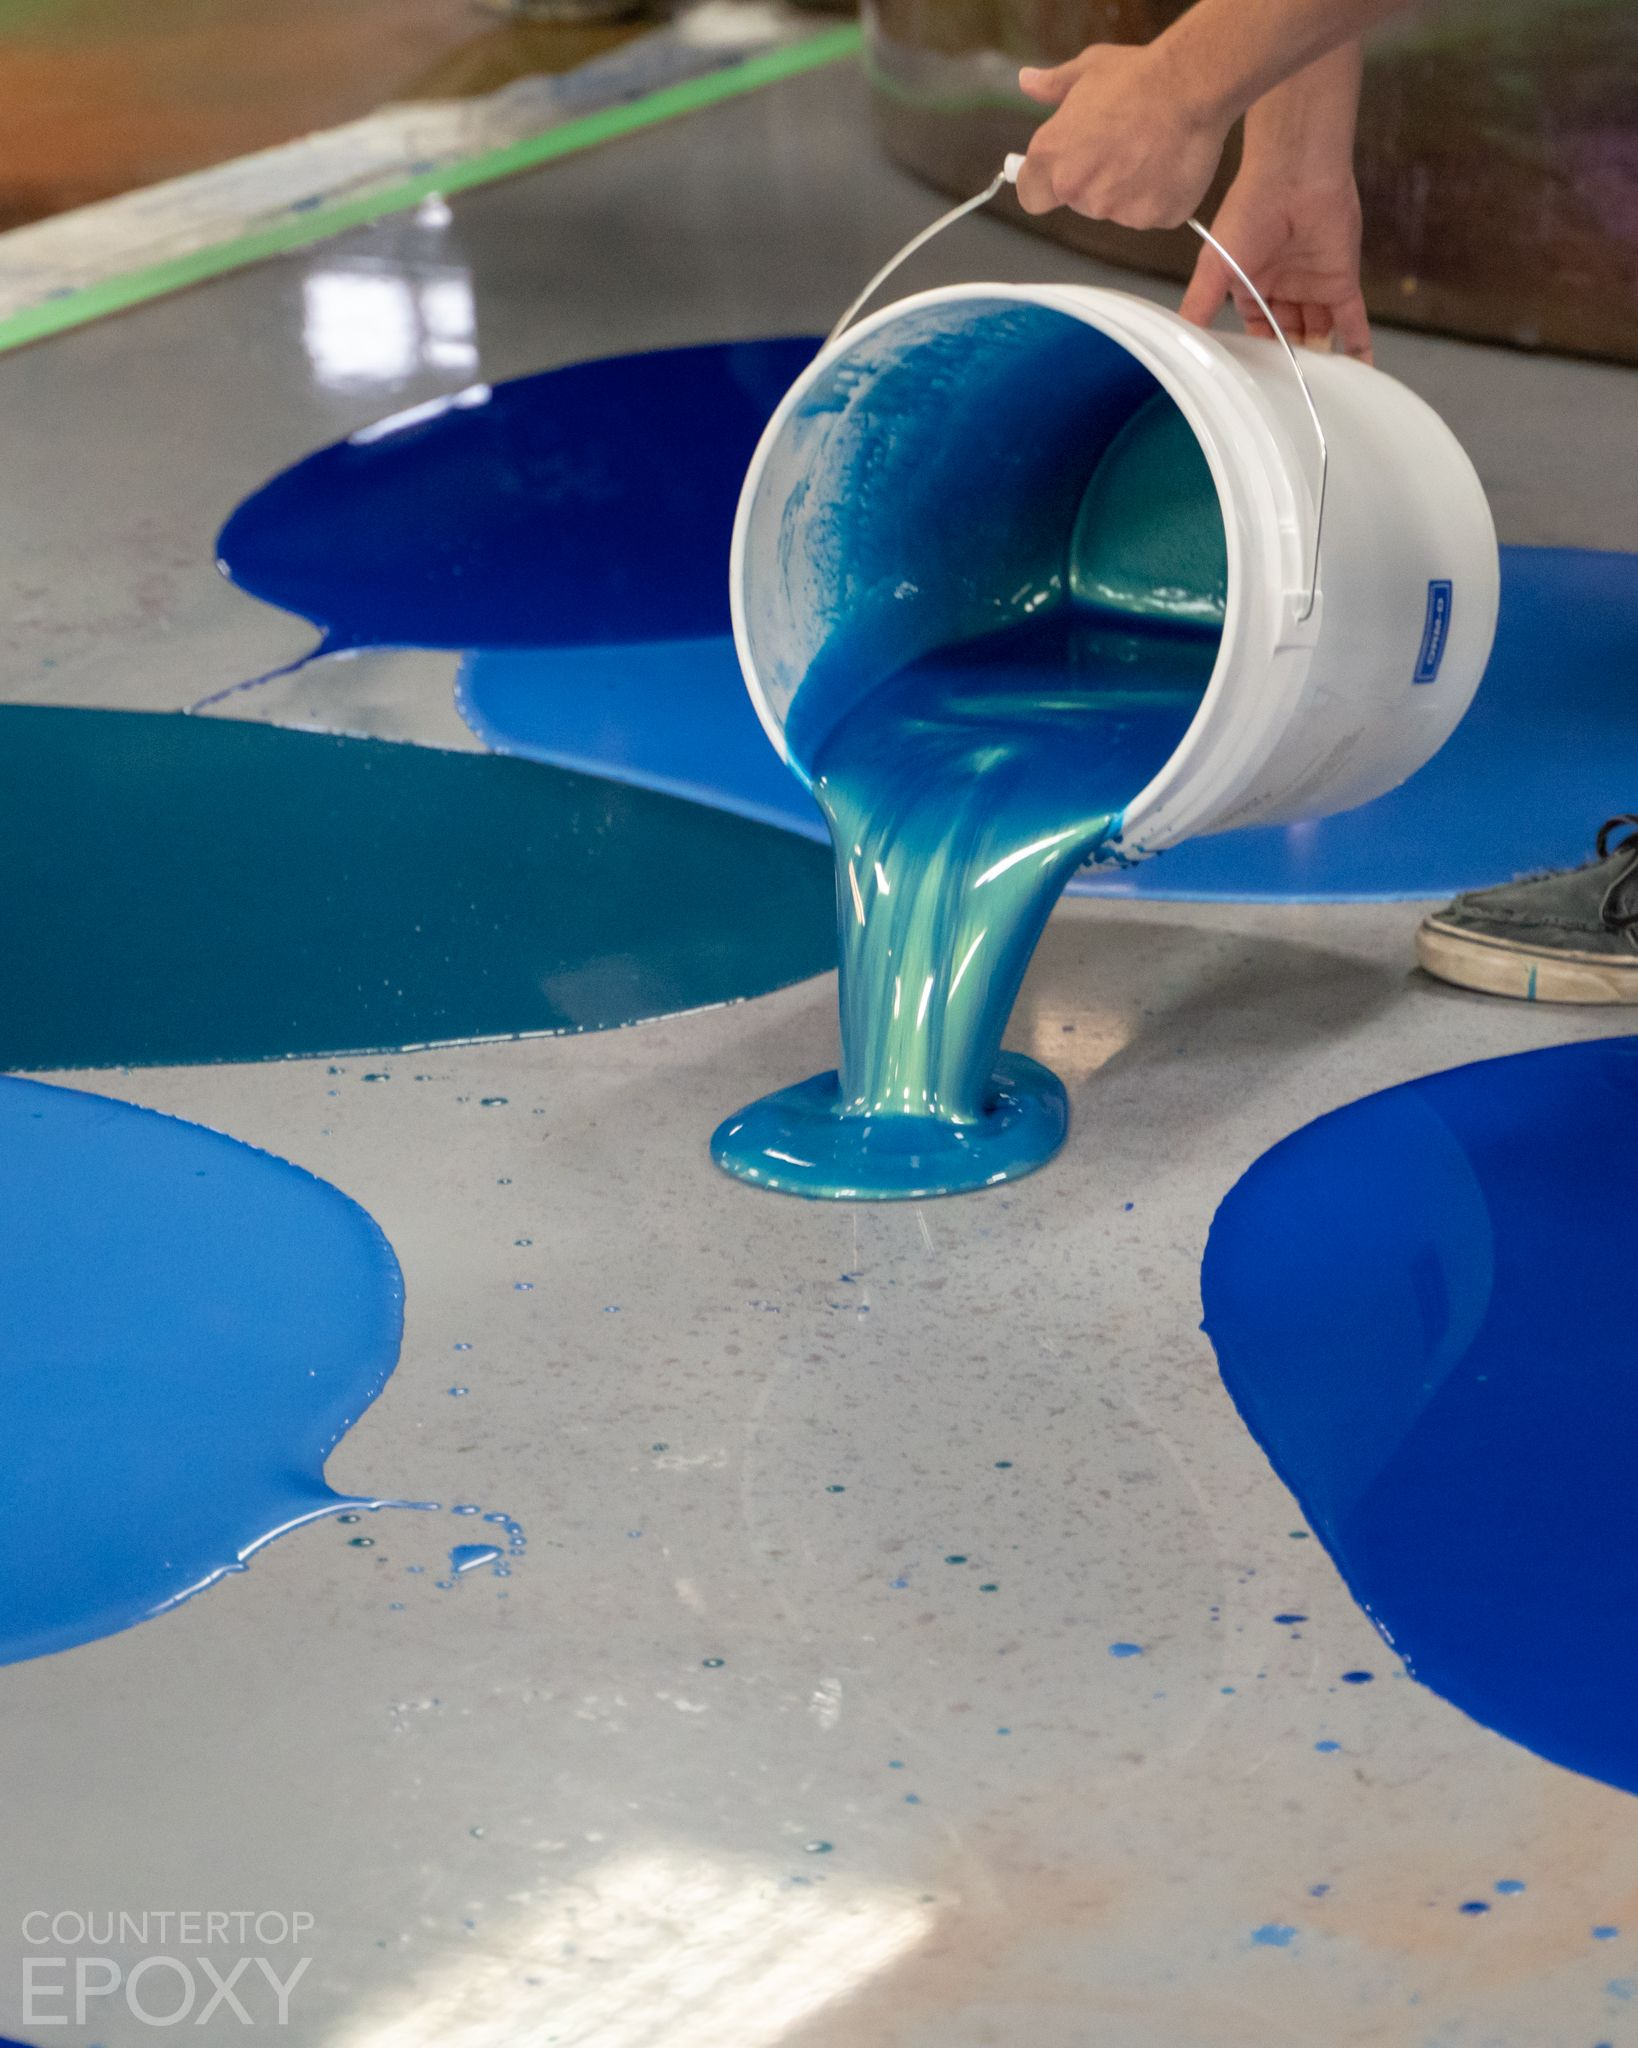 FX Poxy Flooring Epoxy is designed to coat any flooring